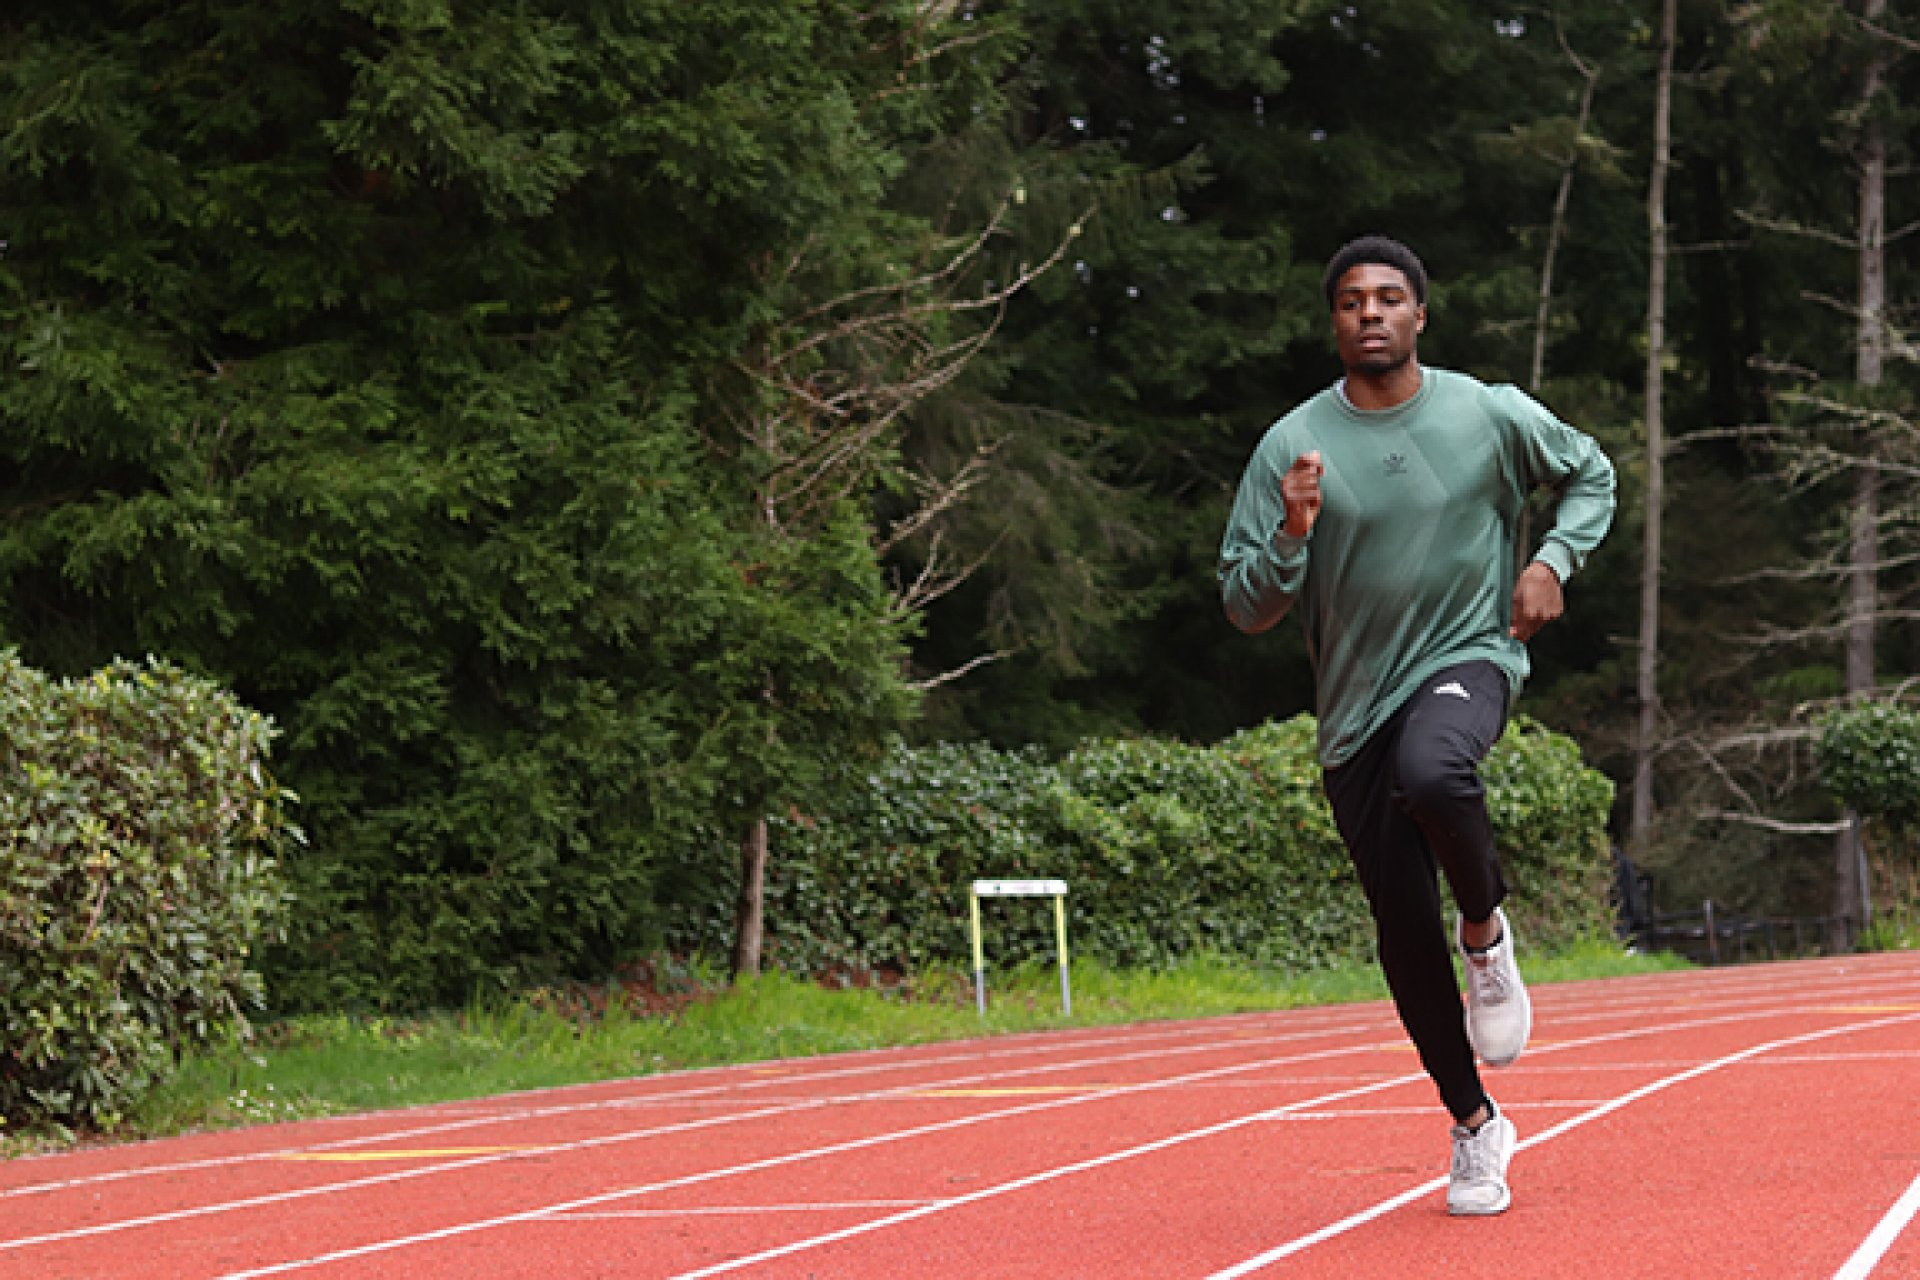 Humboldt State athlete Malachi Arthur takes a lap around the Redwood Bowl Field during track and field practice on Feb. 12. Photo by Diego Linares.